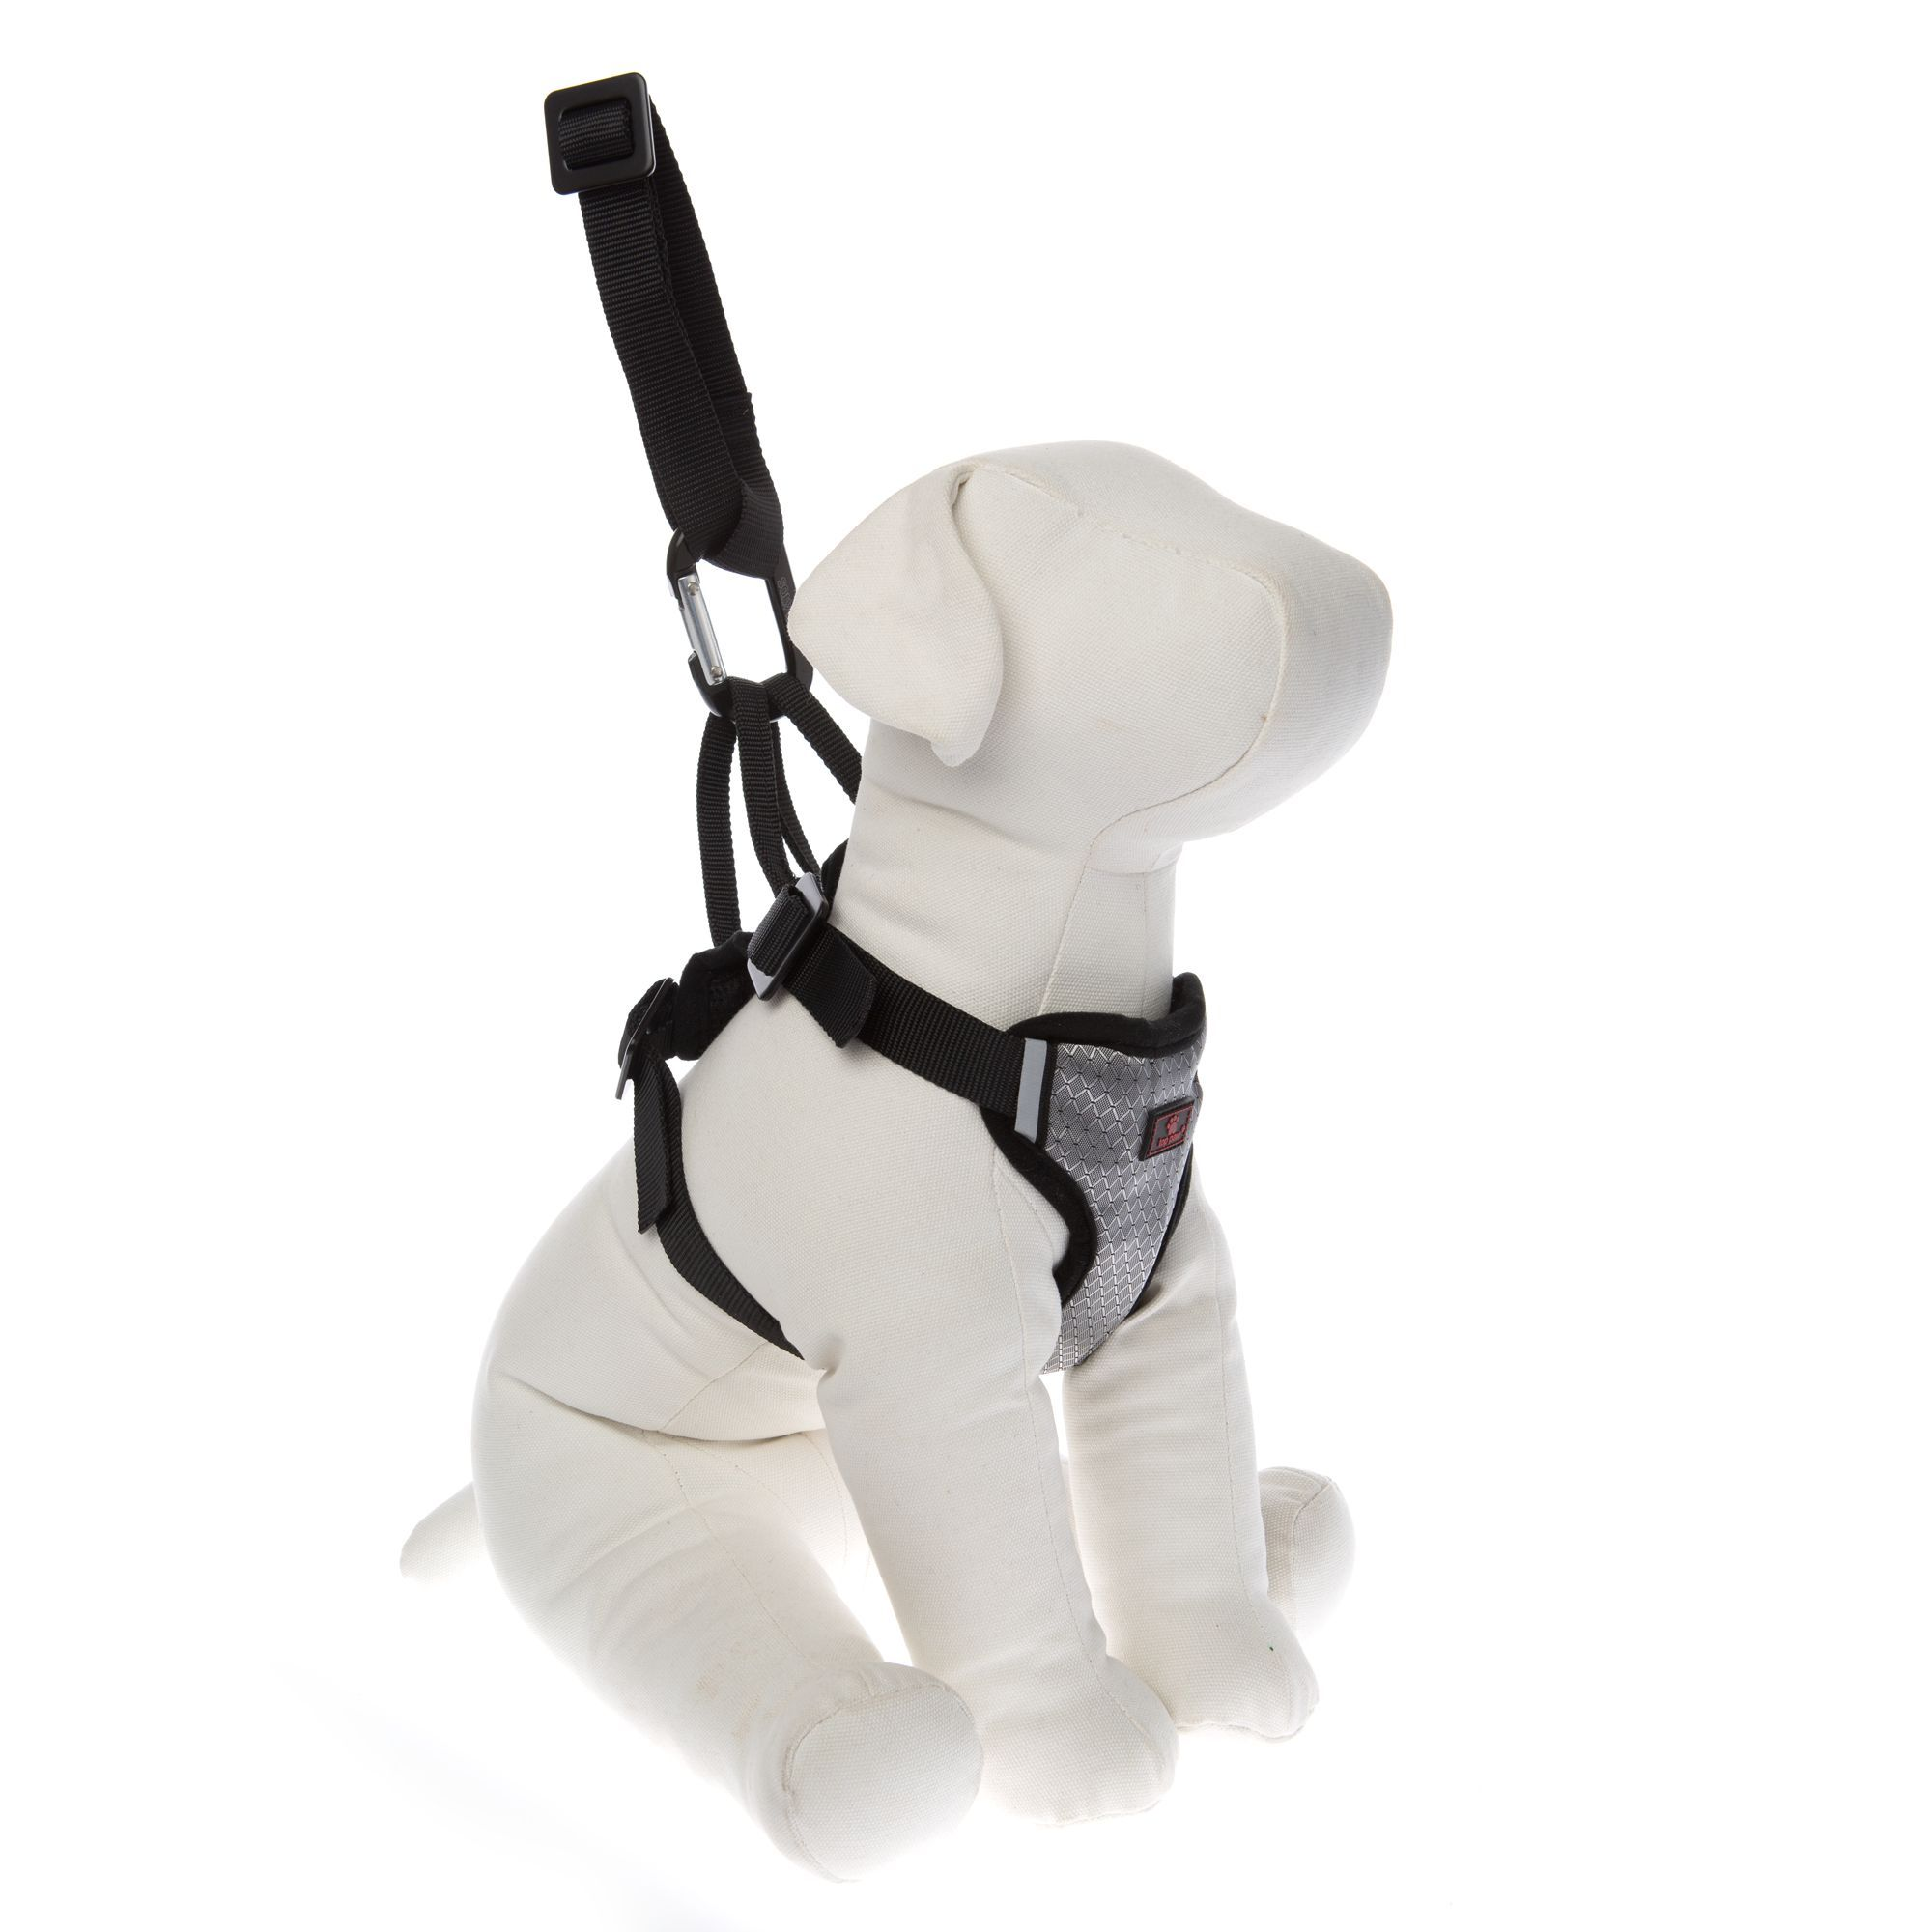 Top Paw Travel Dog Harness Size Large Aluminum Black Silver